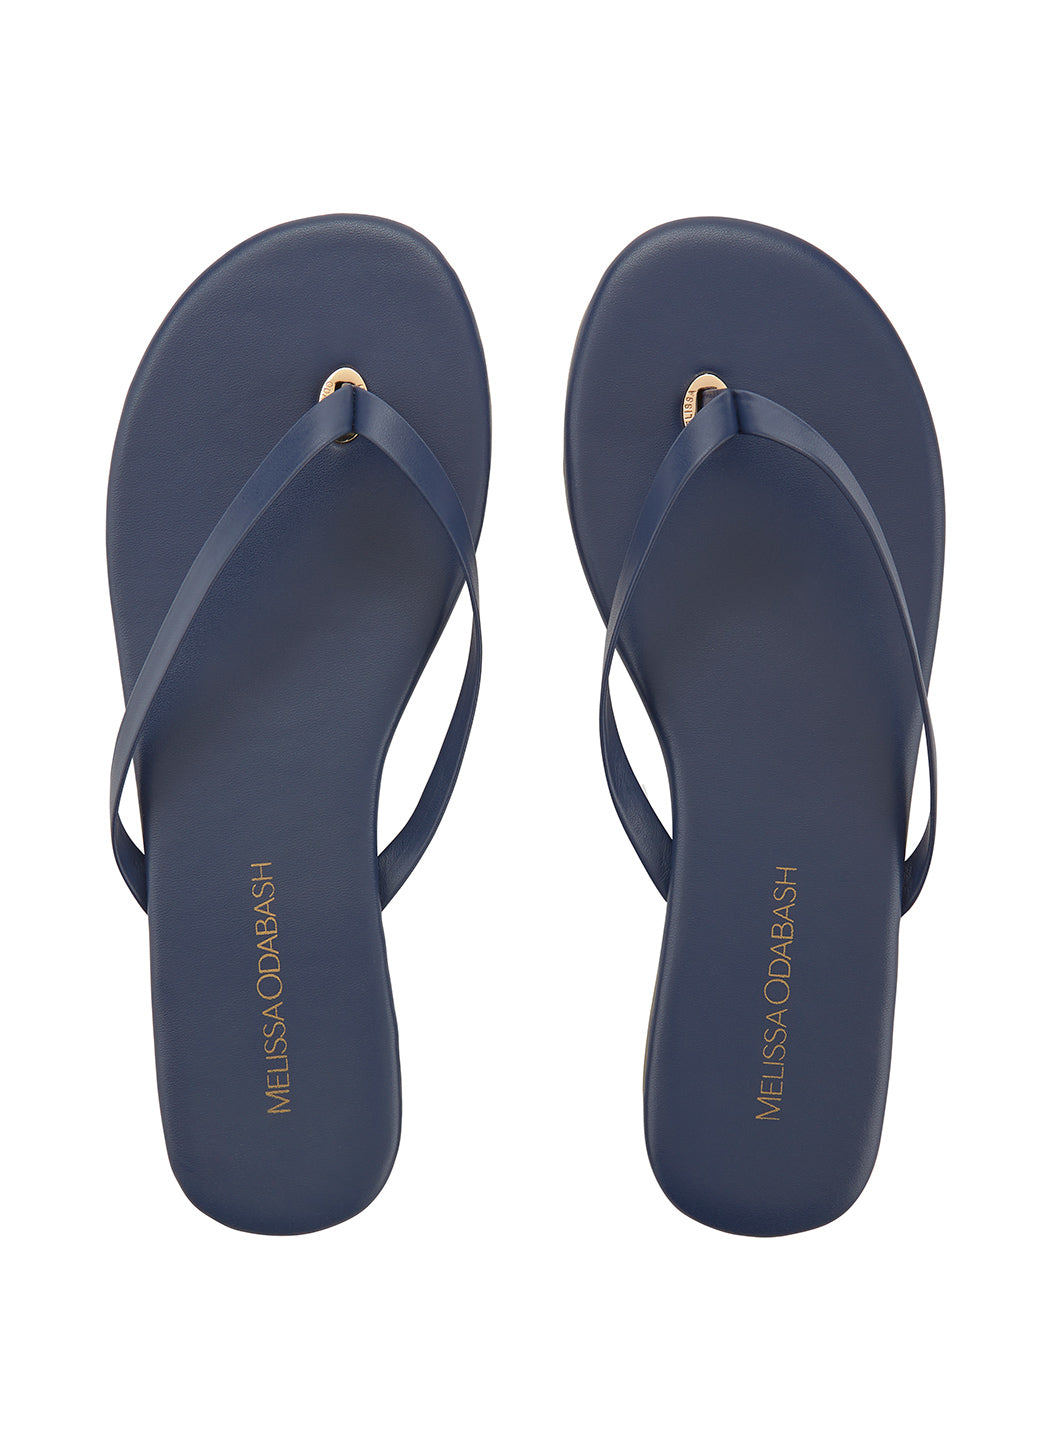 Leather Flip Flops Navy  - Melissa Odabash Leather Flip Flops